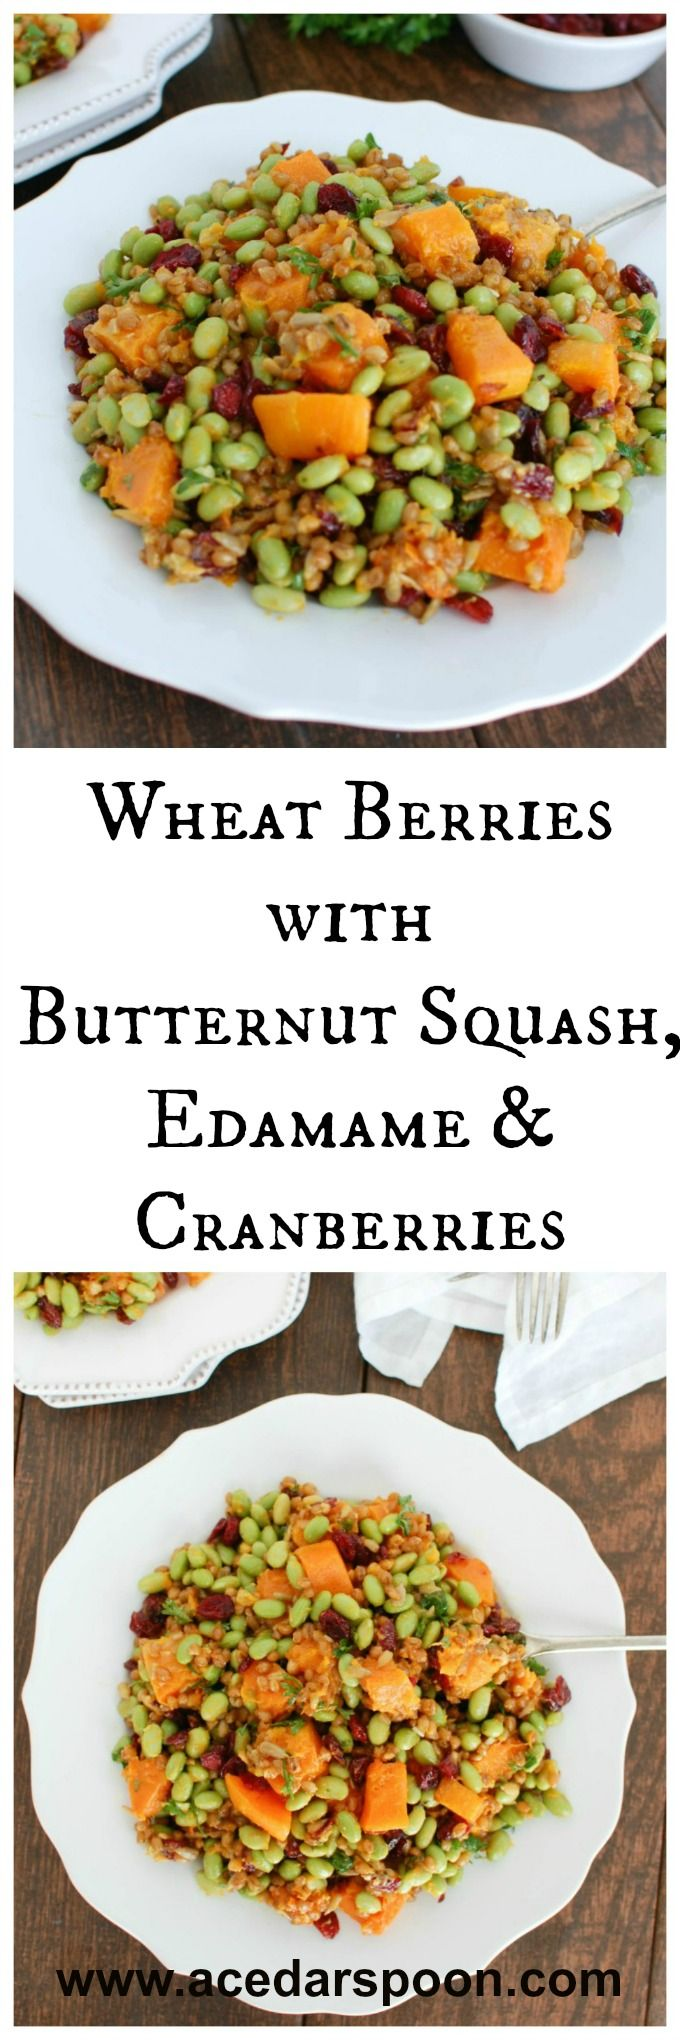 Wheat Berries with Butternut Squash, Edamame and Cranberries via @julia